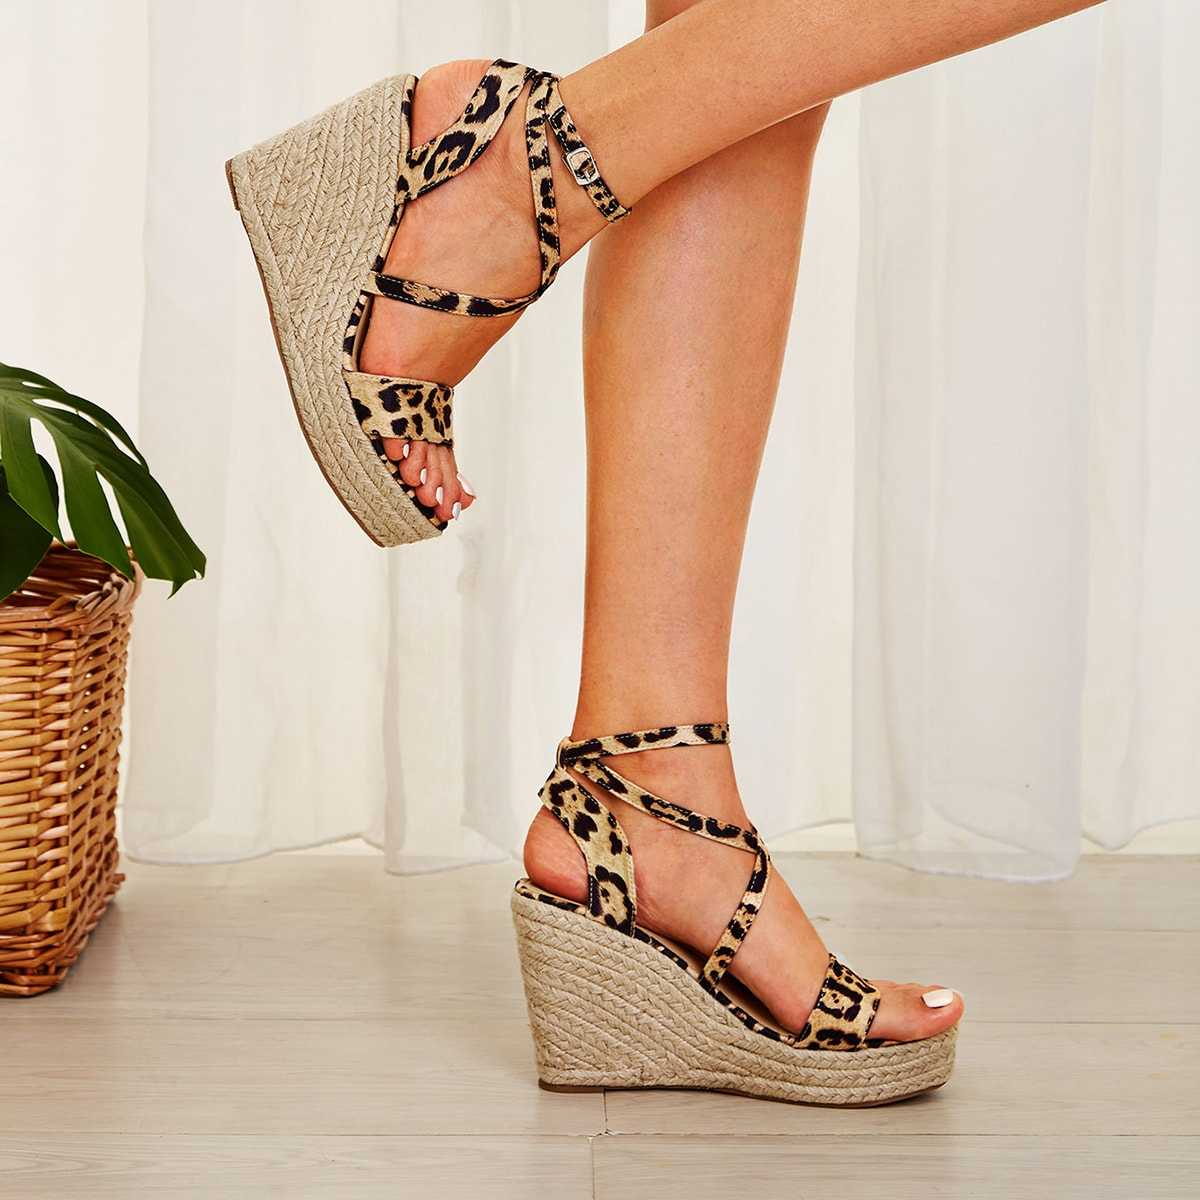 Leopard Print Ankle Strap Espadrille Wedges in Multicolor by ROMWE on GOOFASH